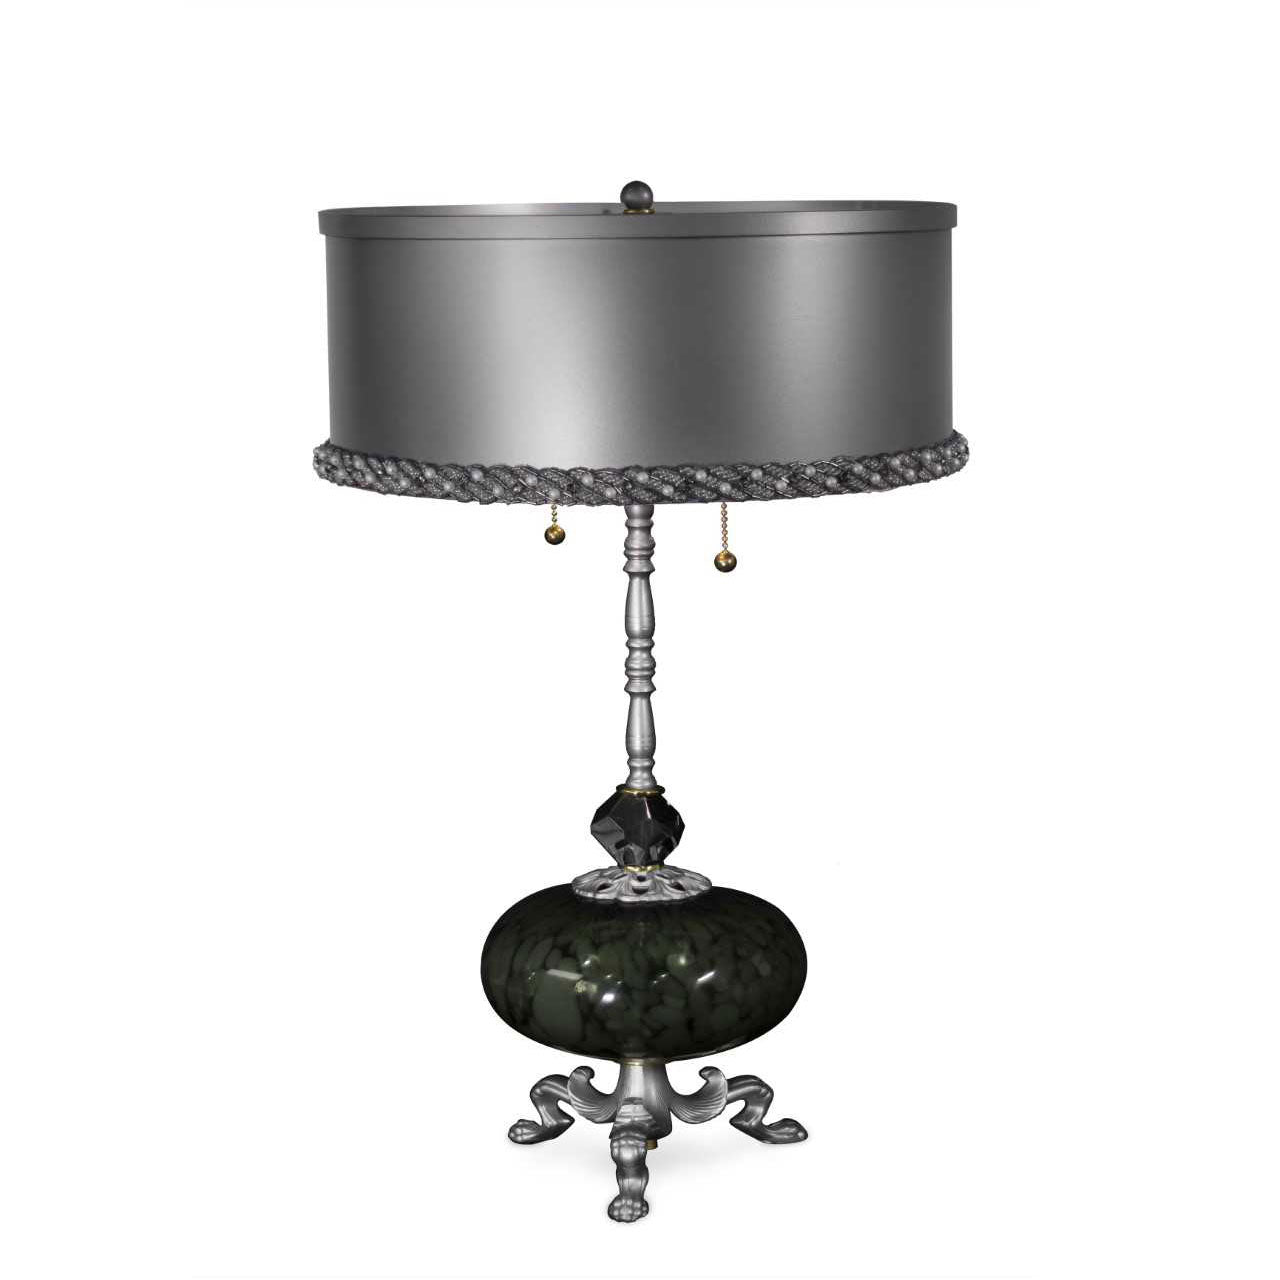 Sinclair Table Lamp, Iron, Brass, Pewter Color, Blown Glass Centerpiece, Crystals by Luna Bella